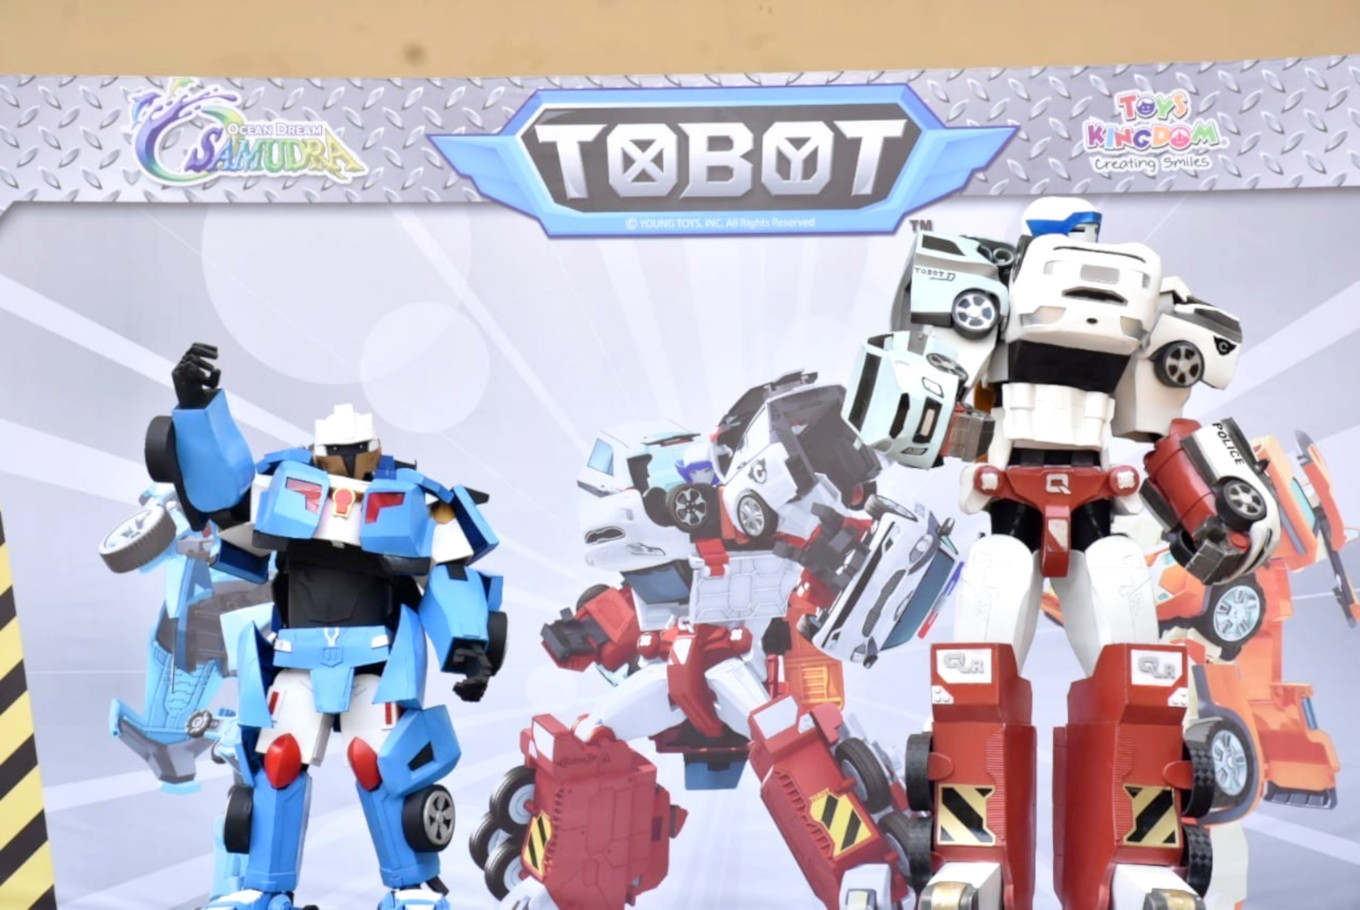 Ancol features 'Tobot' show this April